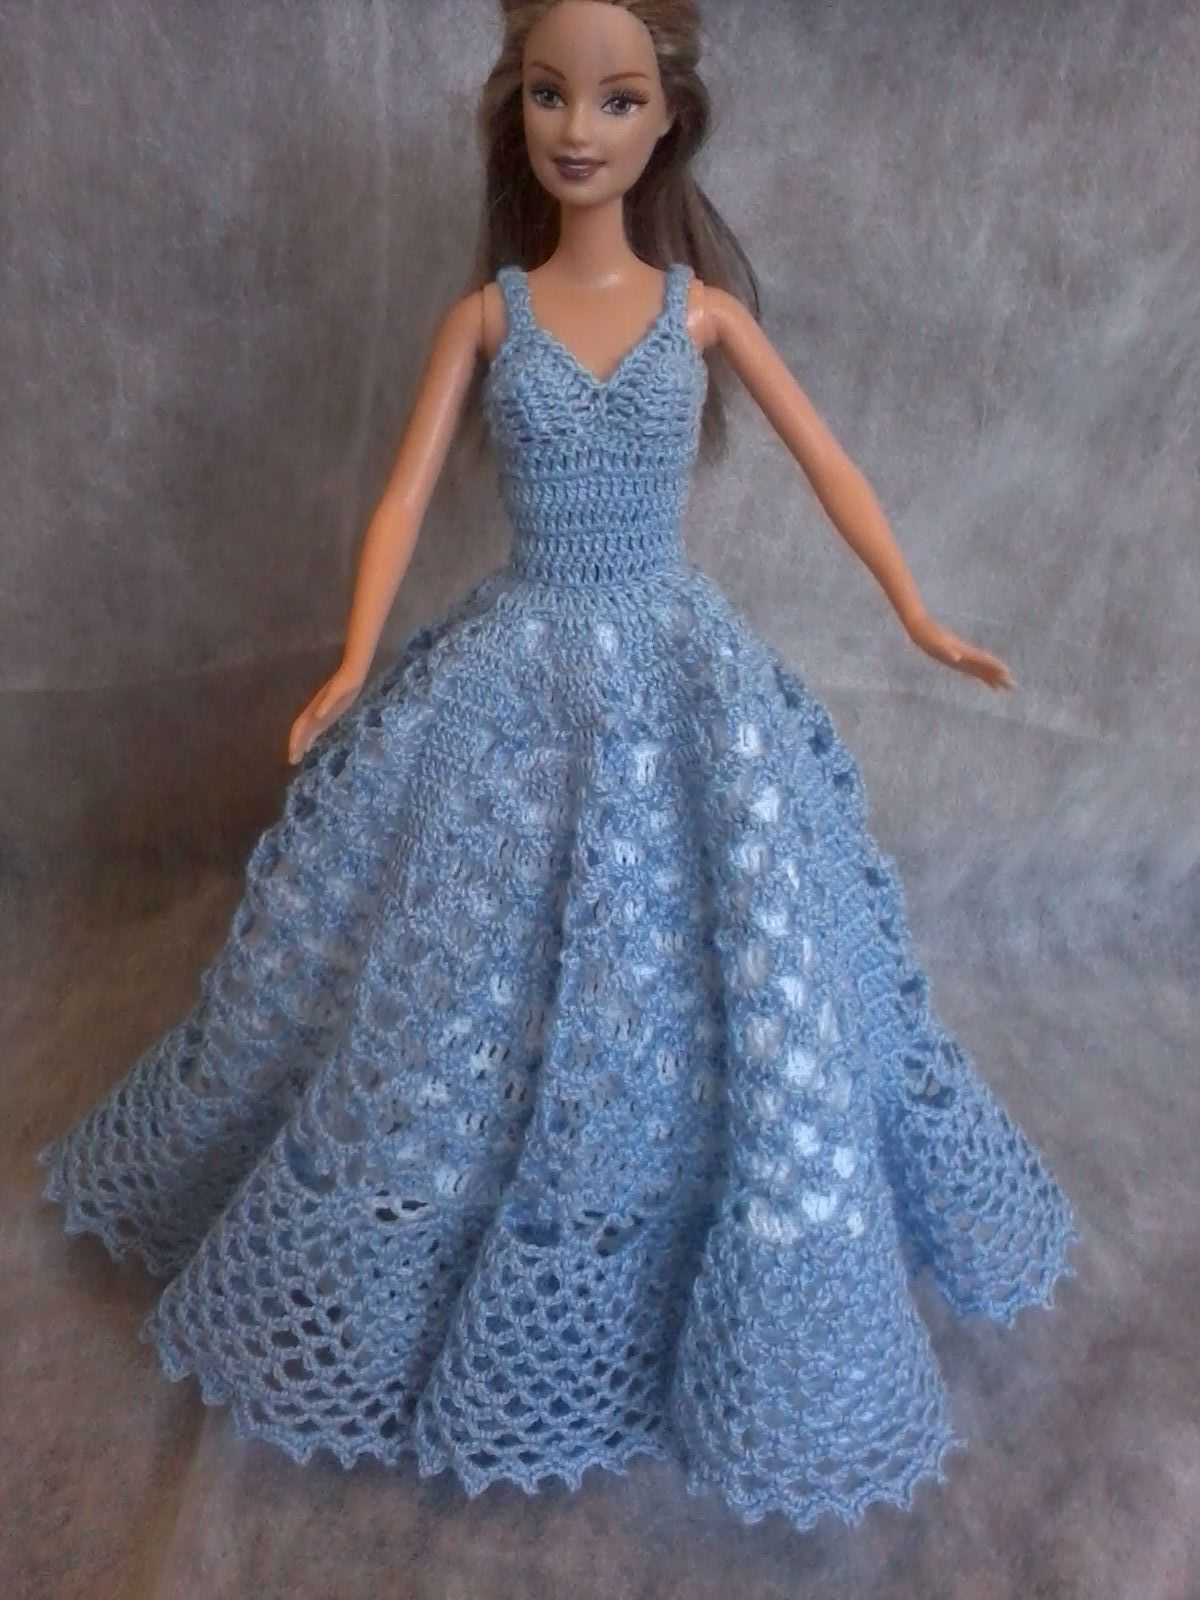 UM MIMO EM CROCHE | Barbie clothes | Pinterest | Barbie, Puppen und ...